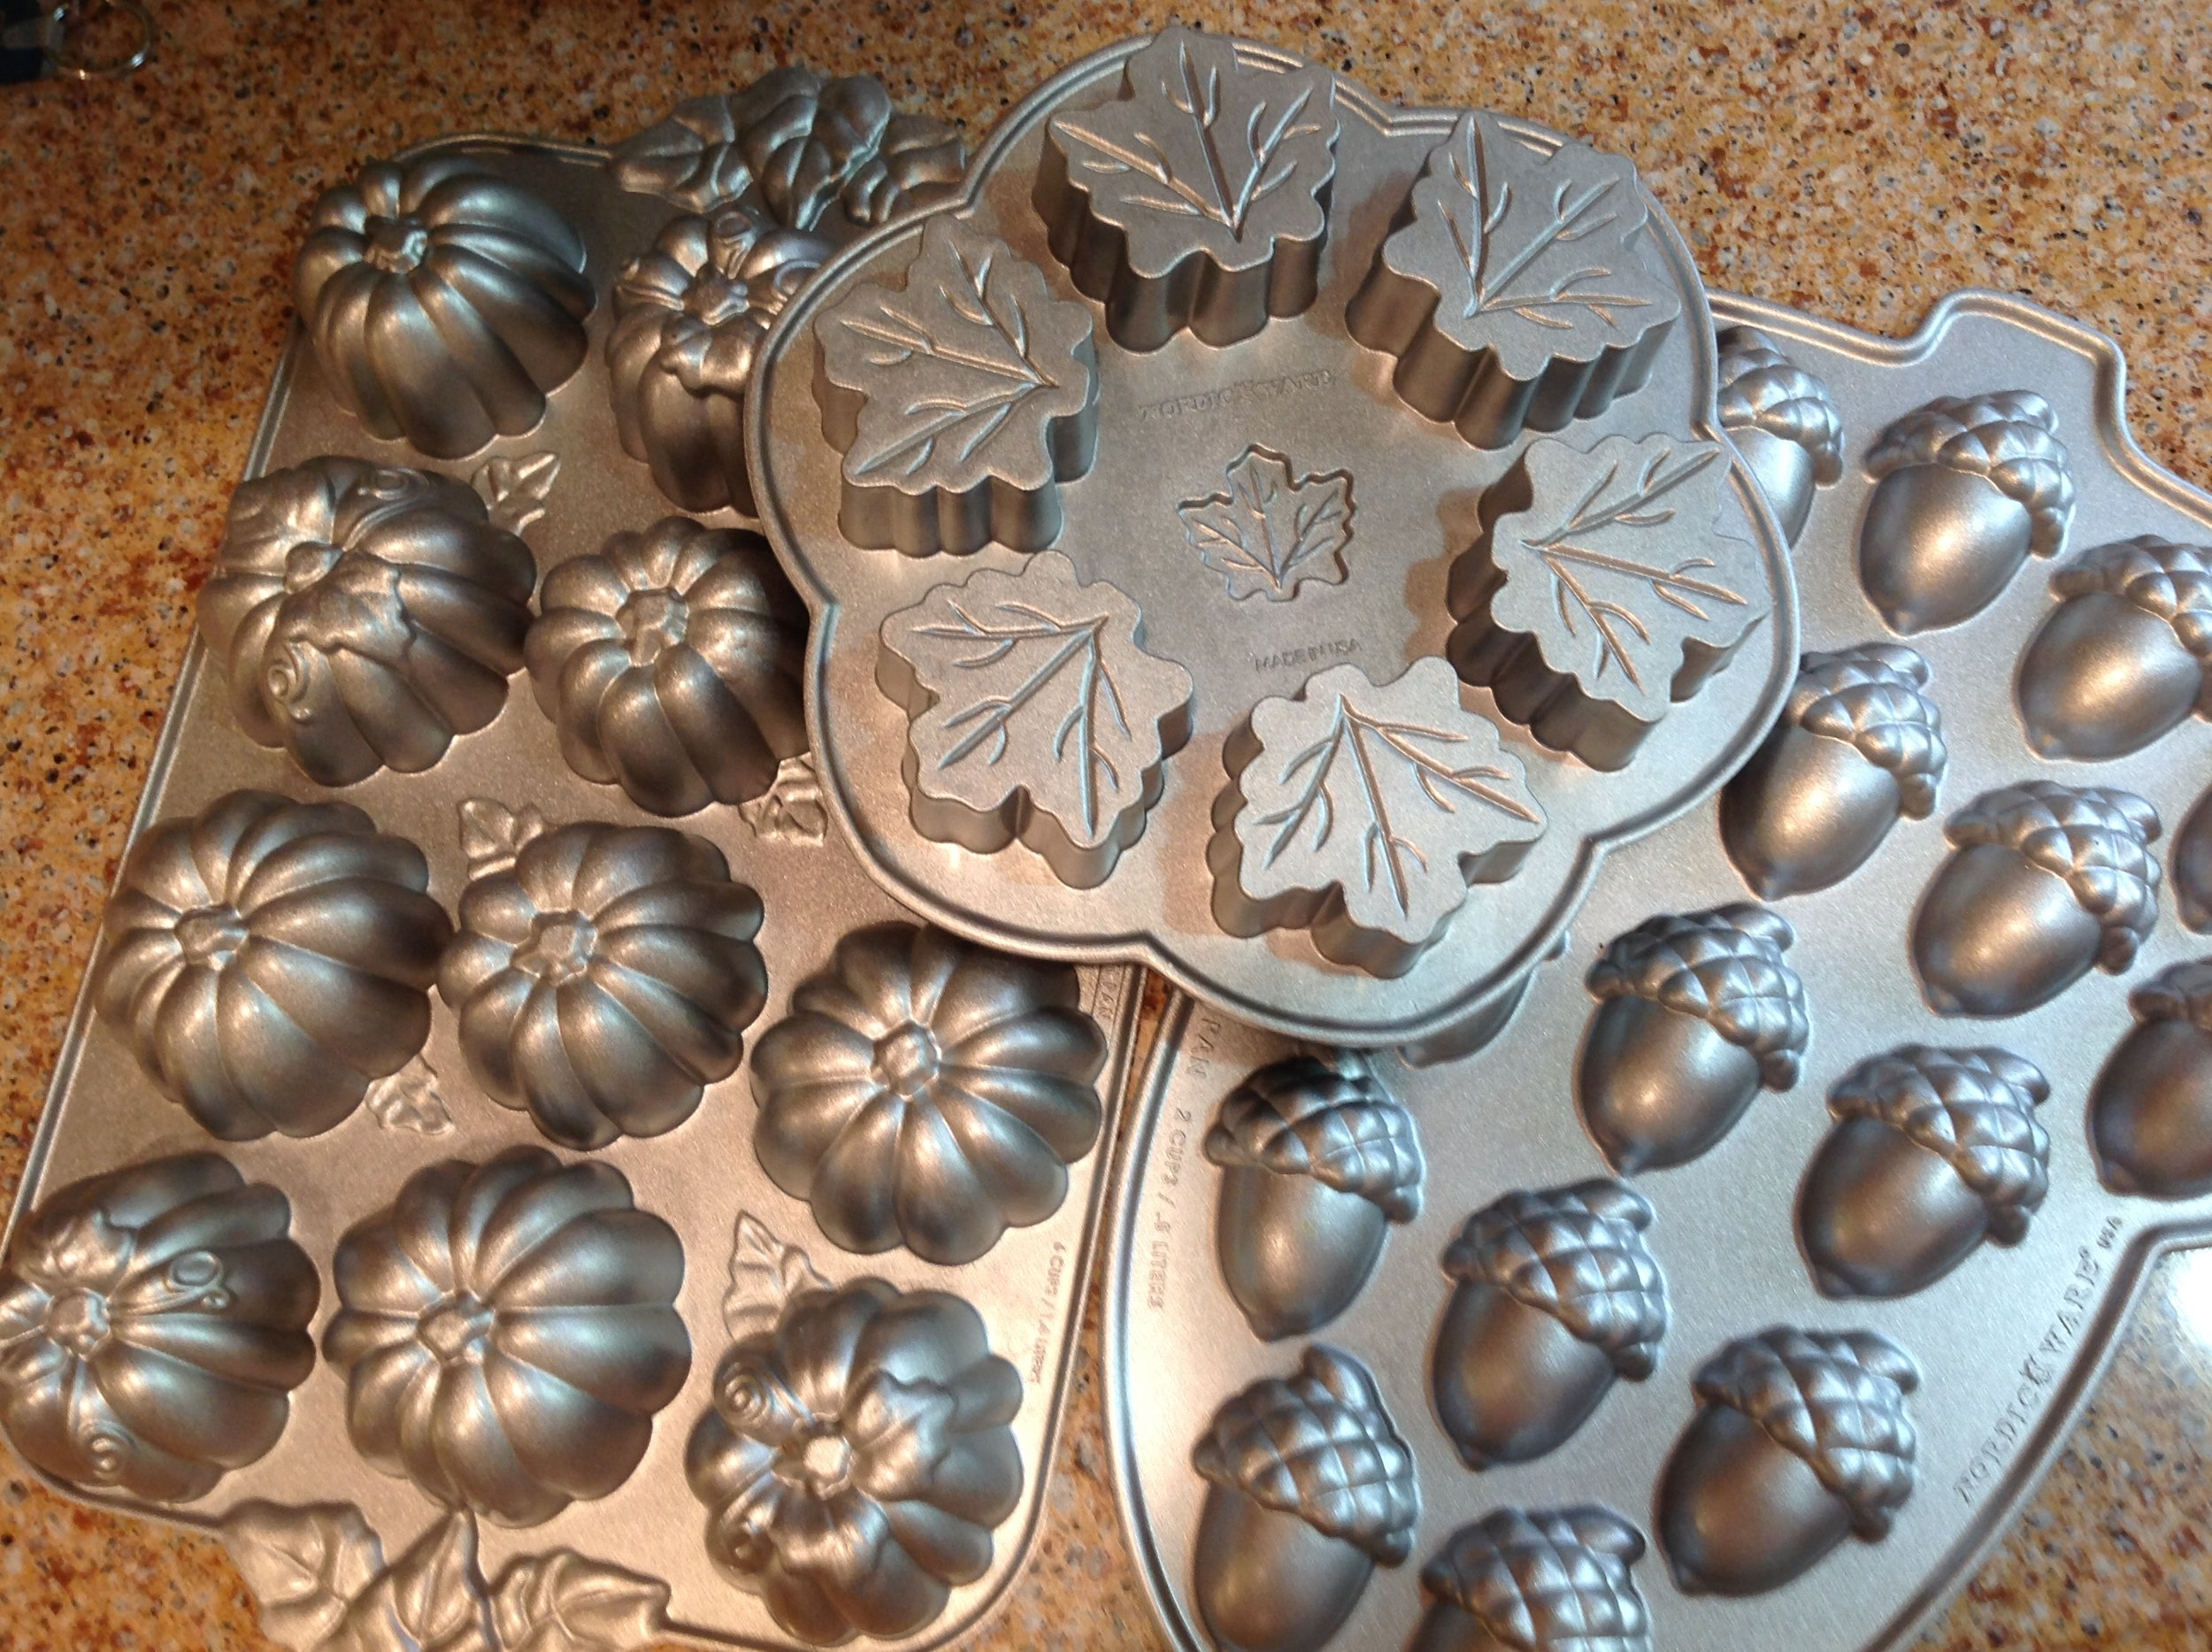 Autumnal themes baking pans by NordicWare.